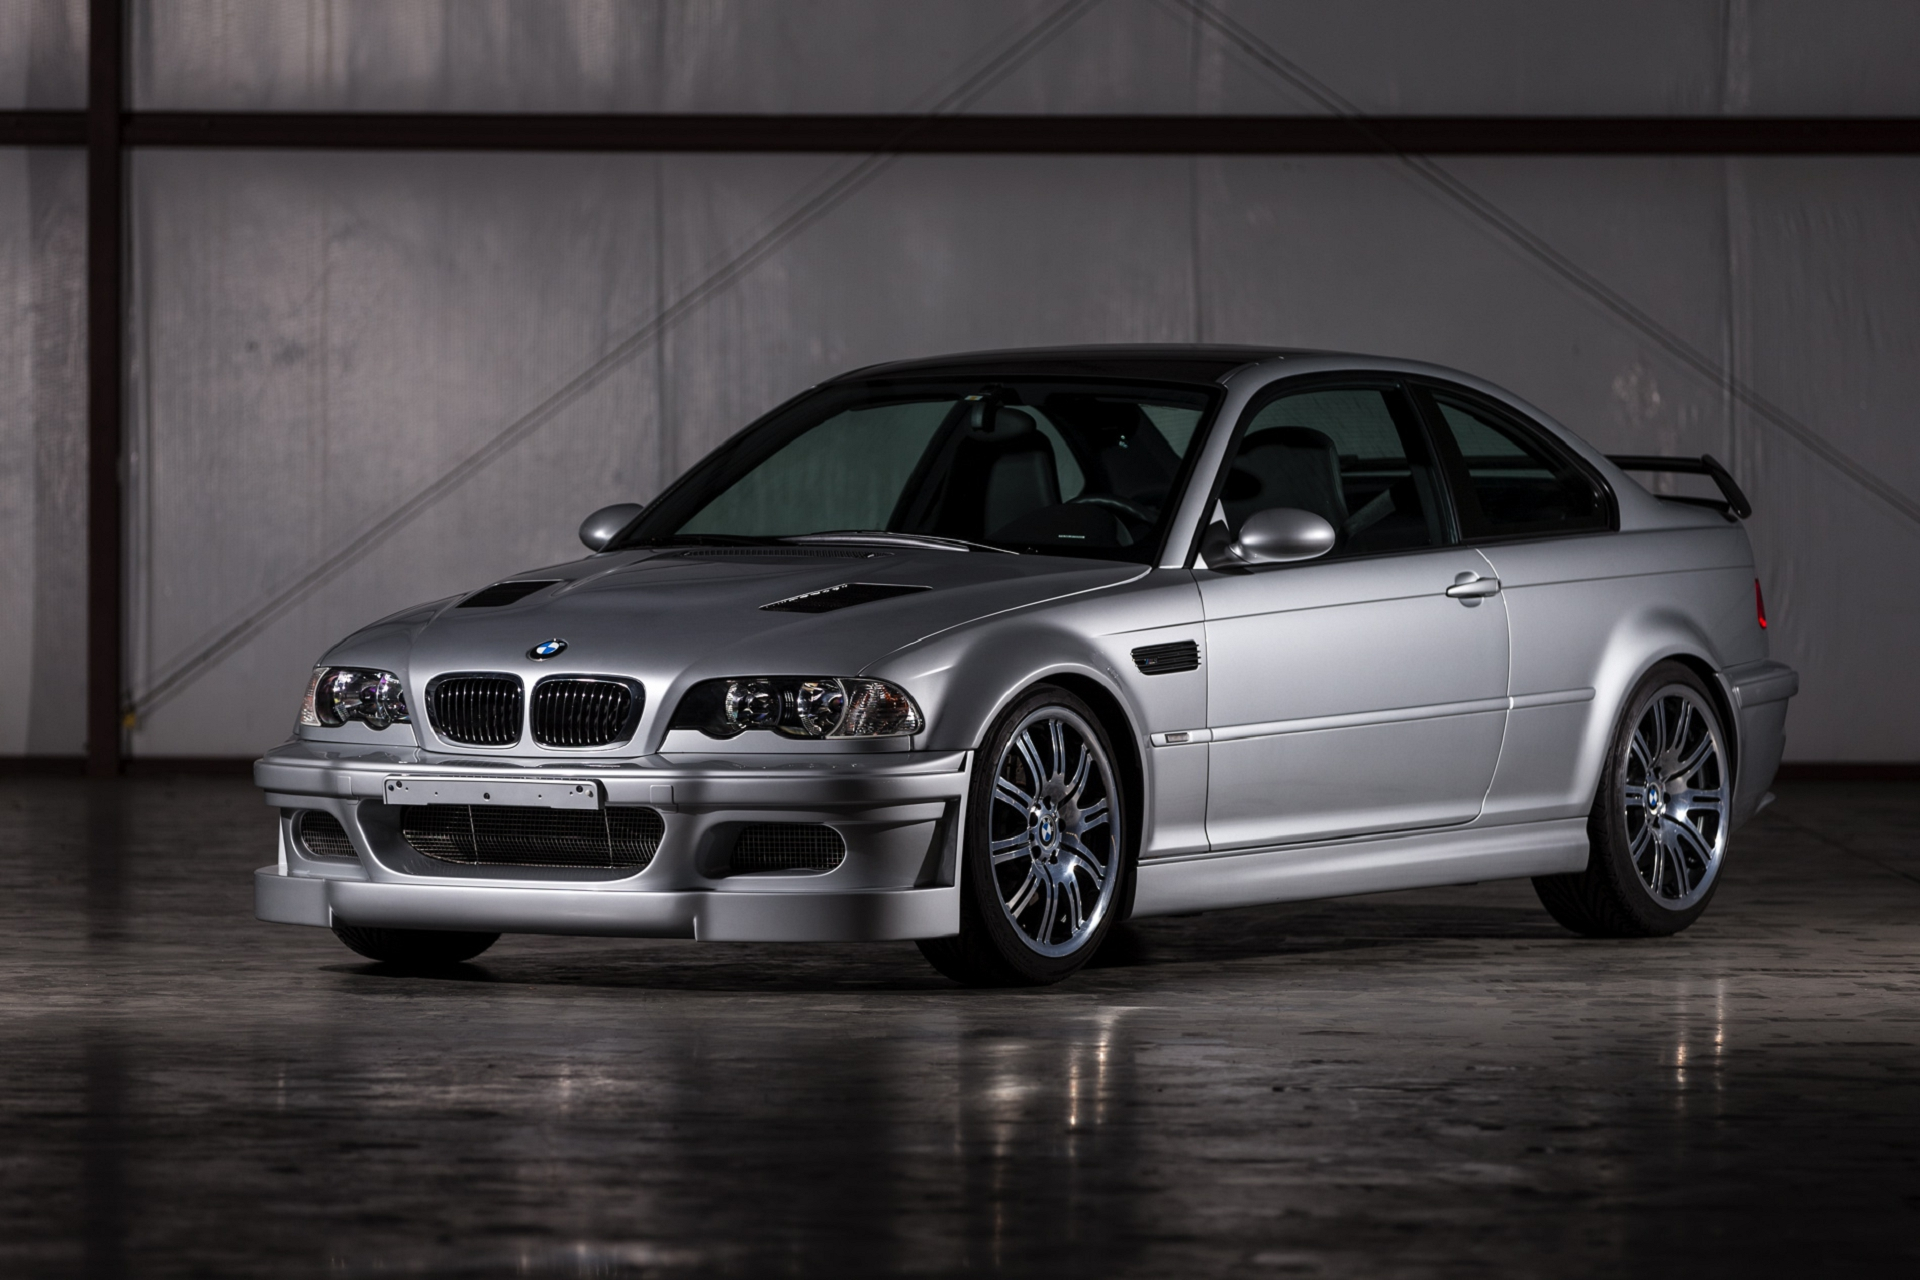 bmw m3 wallpapers images photos pictures backgrounds. Black Bedroom Furniture Sets. Home Design Ideas